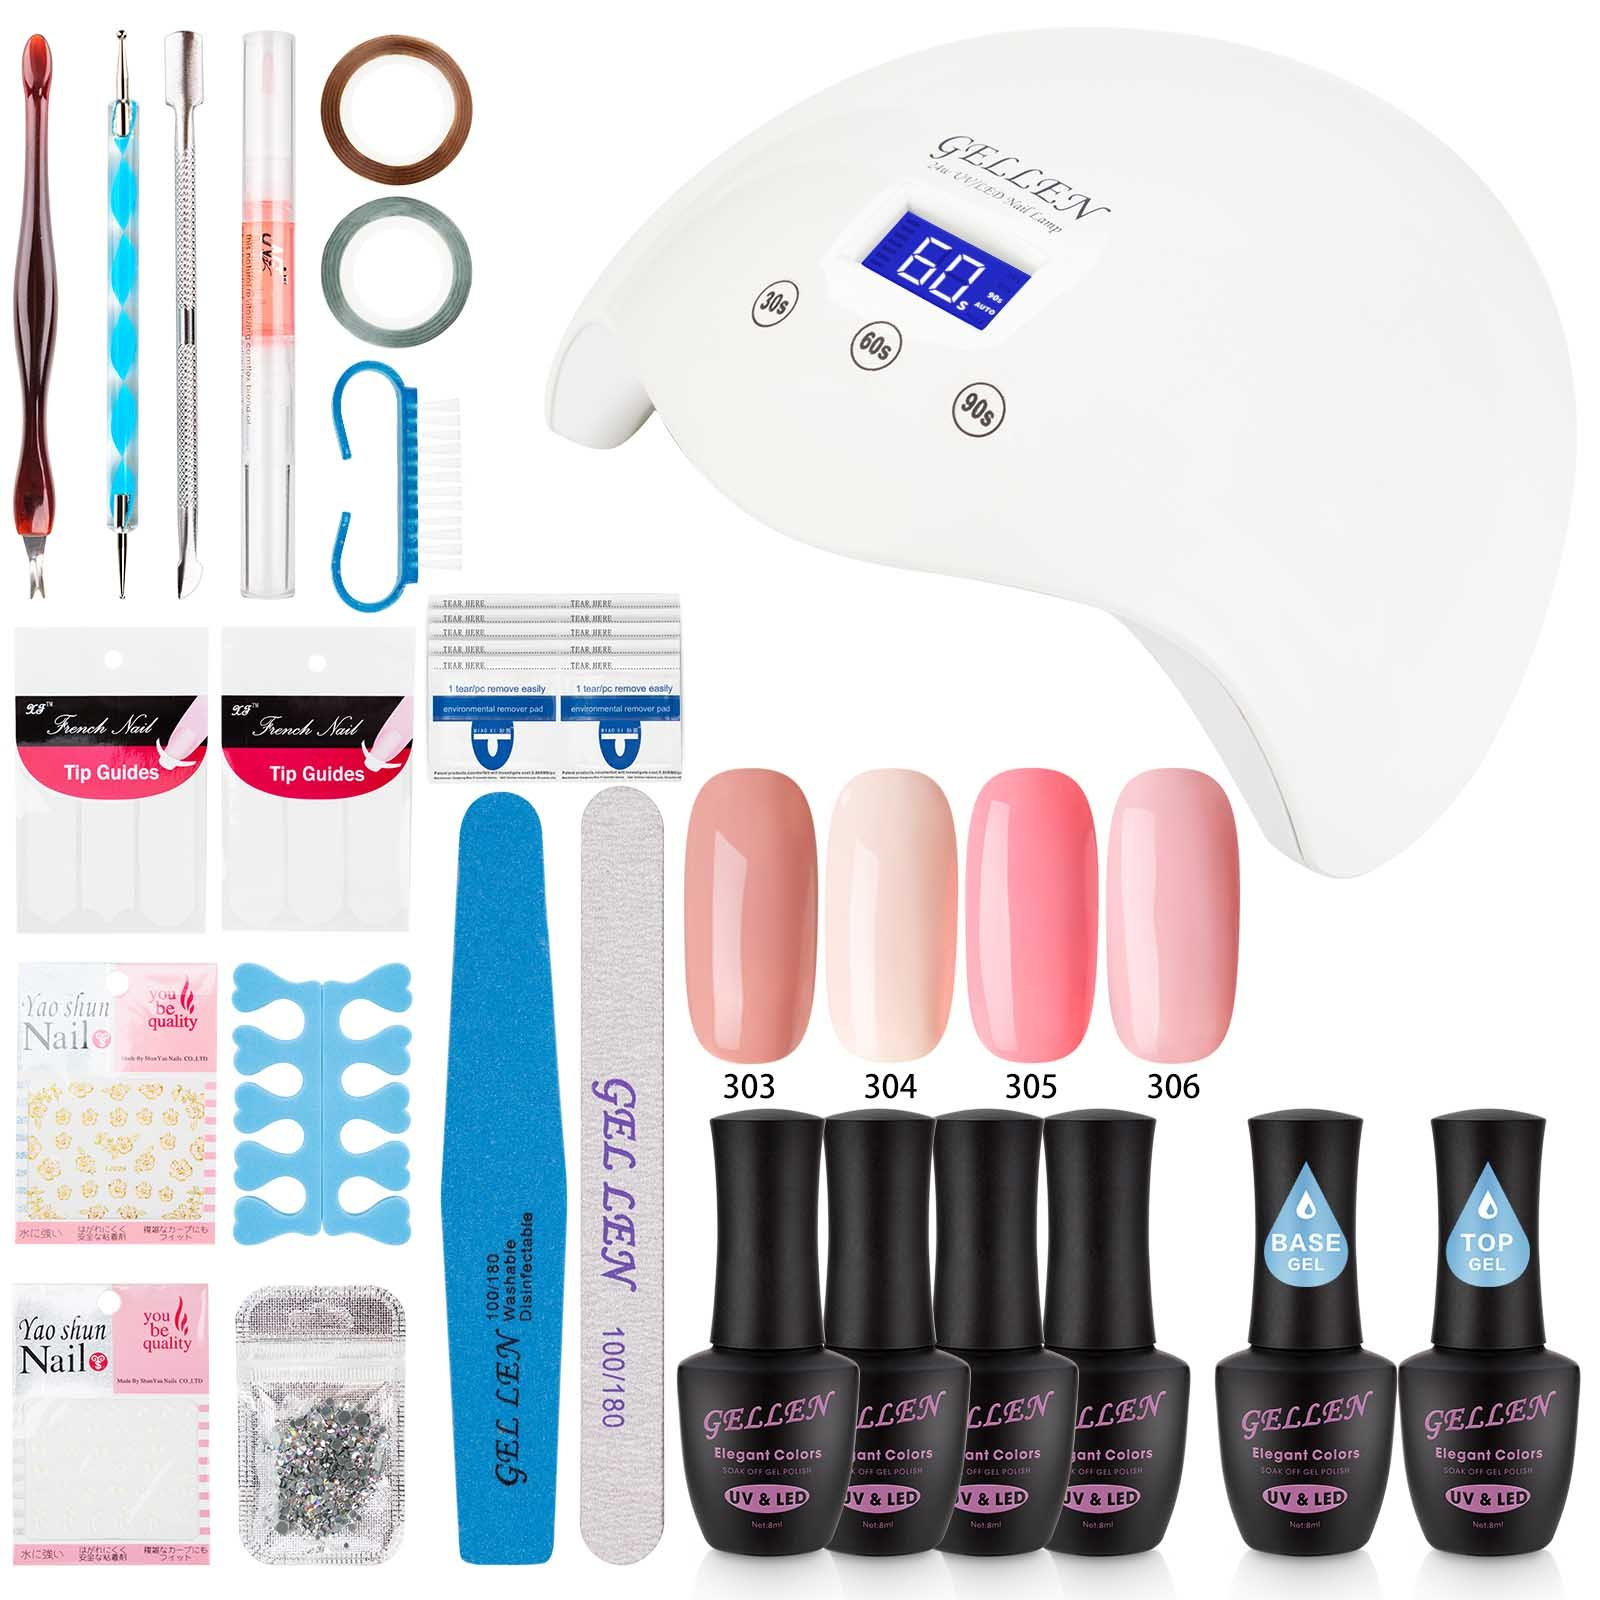 Gelish Complete Starter Kit Gel Led Lamp Tools Gellen Nail Polish Manicure Salon Ebay